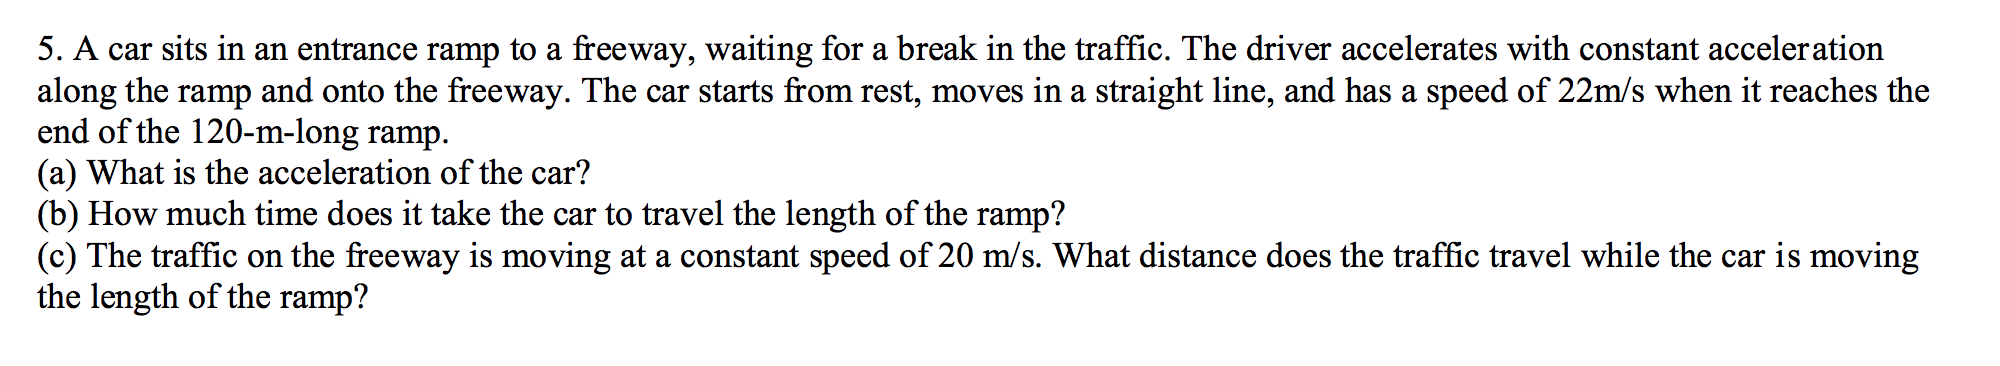 5. A car sits in an entrance ramp to a freeway, waiting for a break in the traffic. The driver accelerates with constant acceleration along the ramp and onto the freeway. The car starts from rest, moves in a straight line, and has a speed of 22m/s when it reaches the end of the 120-m-long ramp (a) What is the acceleration of the car? (b) How much time does it take the car to travel the length of the ramp? (c) The traffic on the freeway is moving at a constant speed of 20 m/s. What distance does the traffic travel while the car is moving the length of the ramp? а